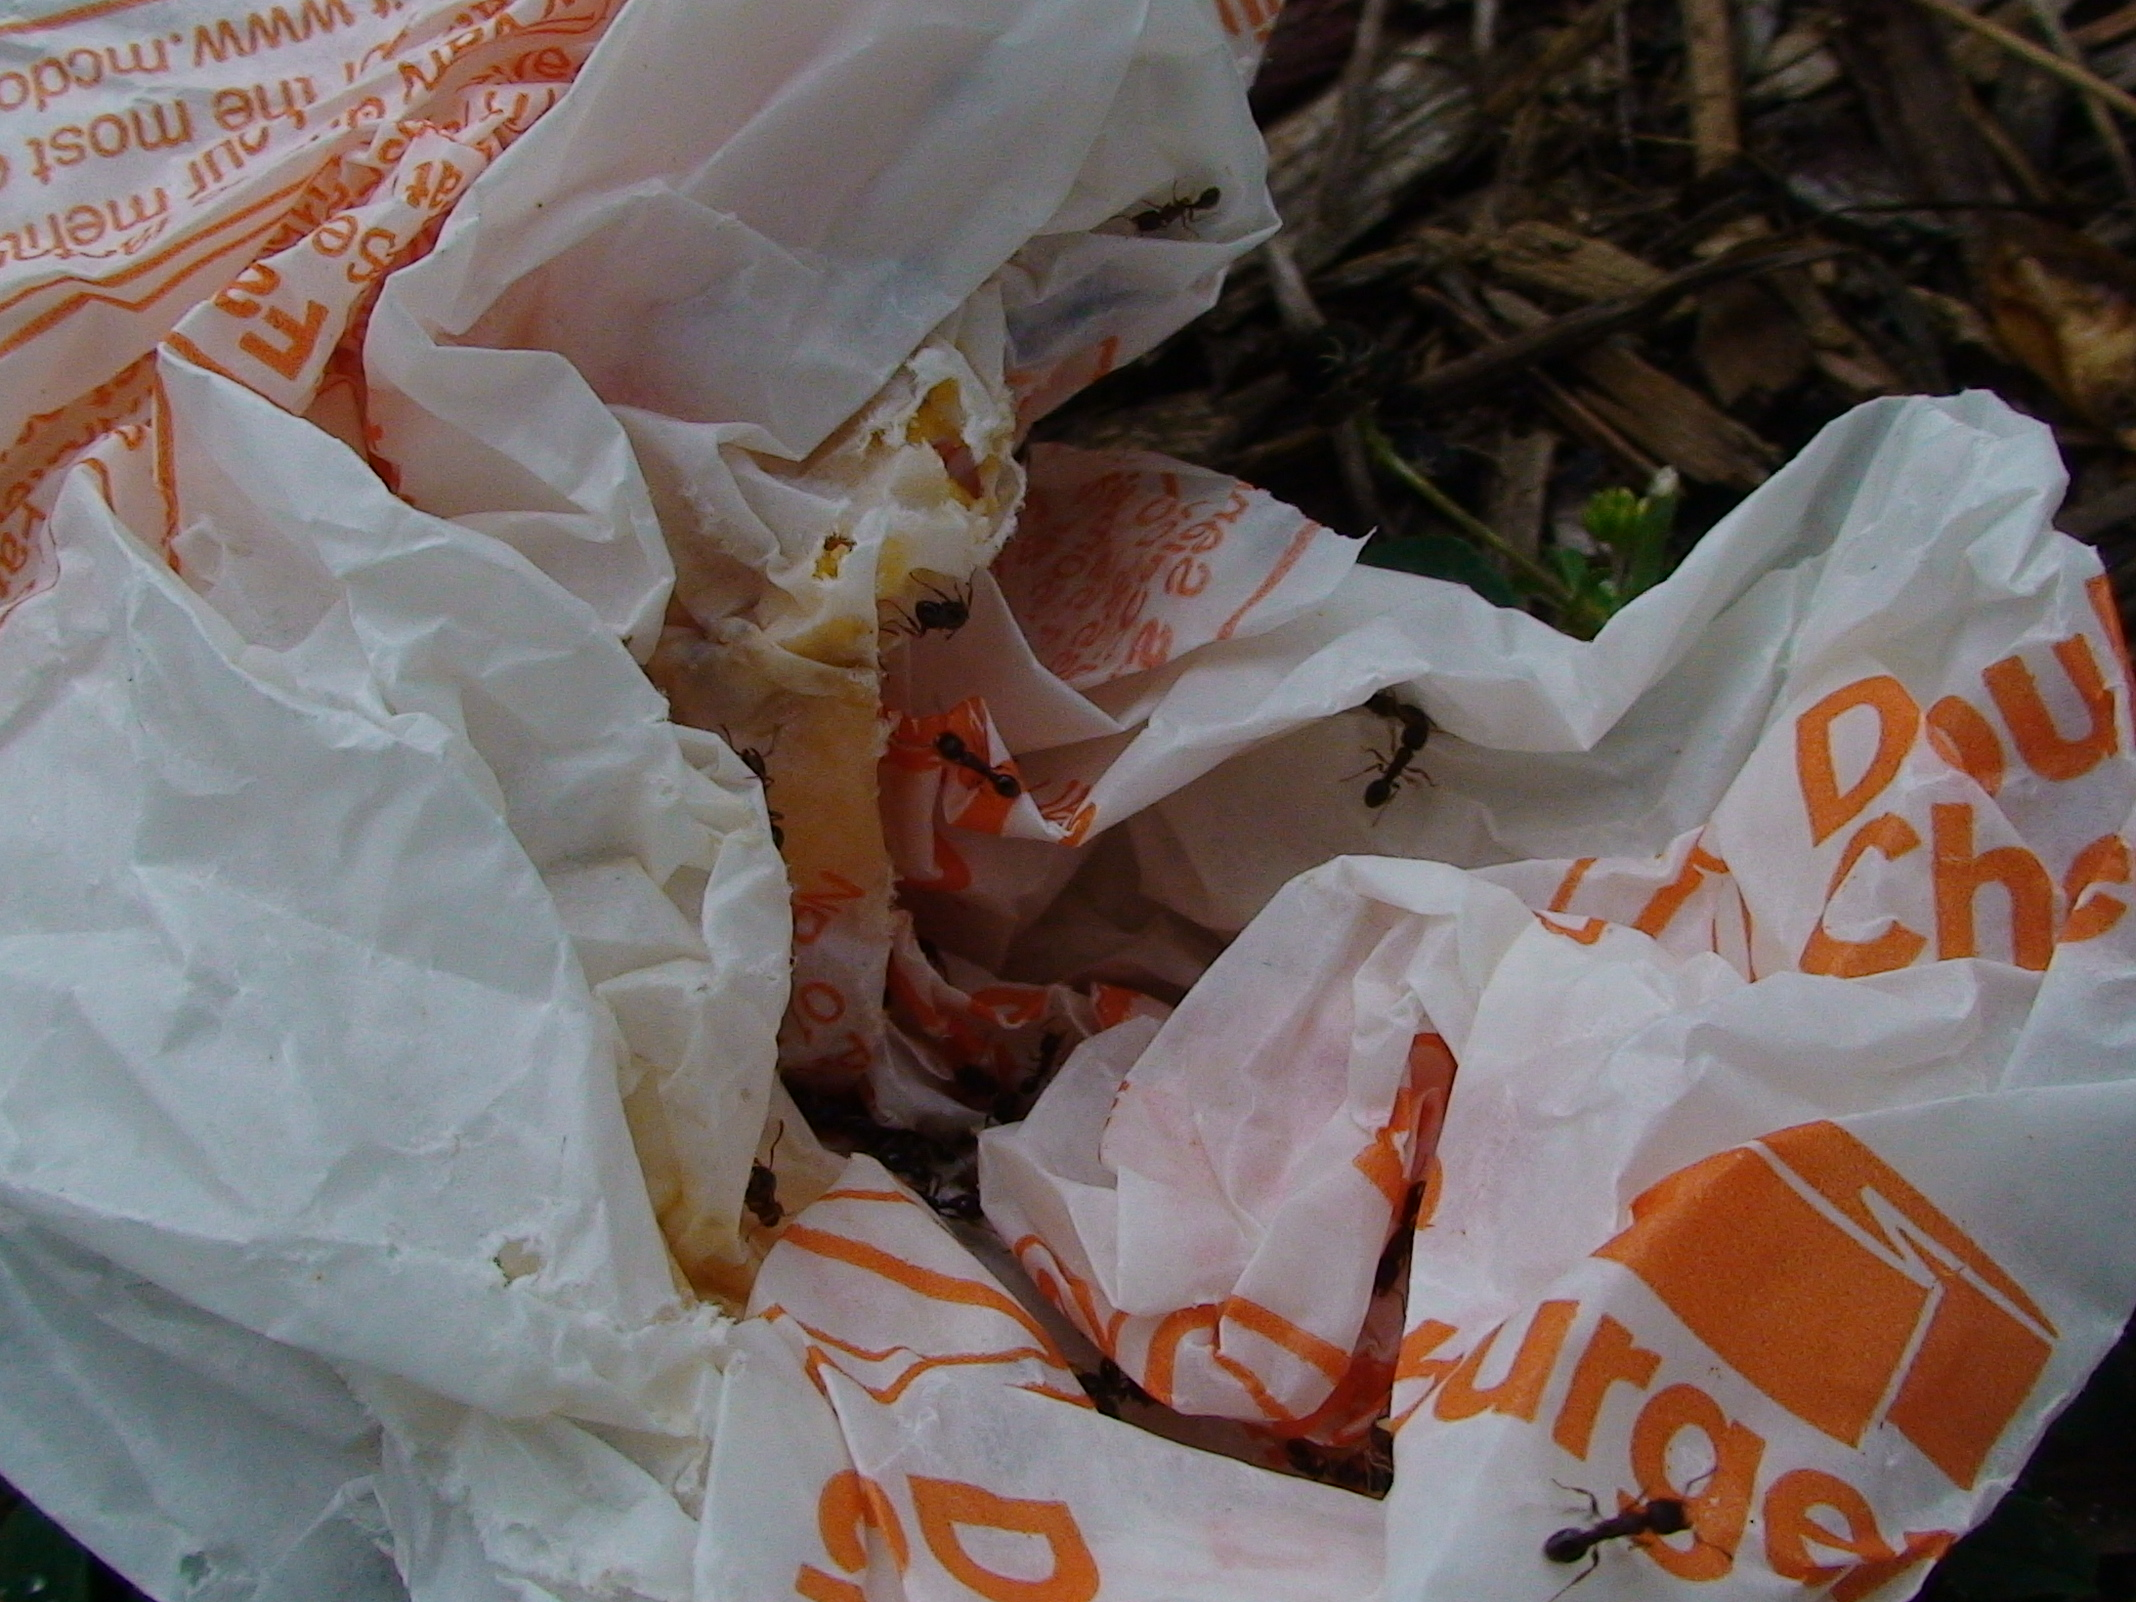 Wax hamburger wrapper, with ants